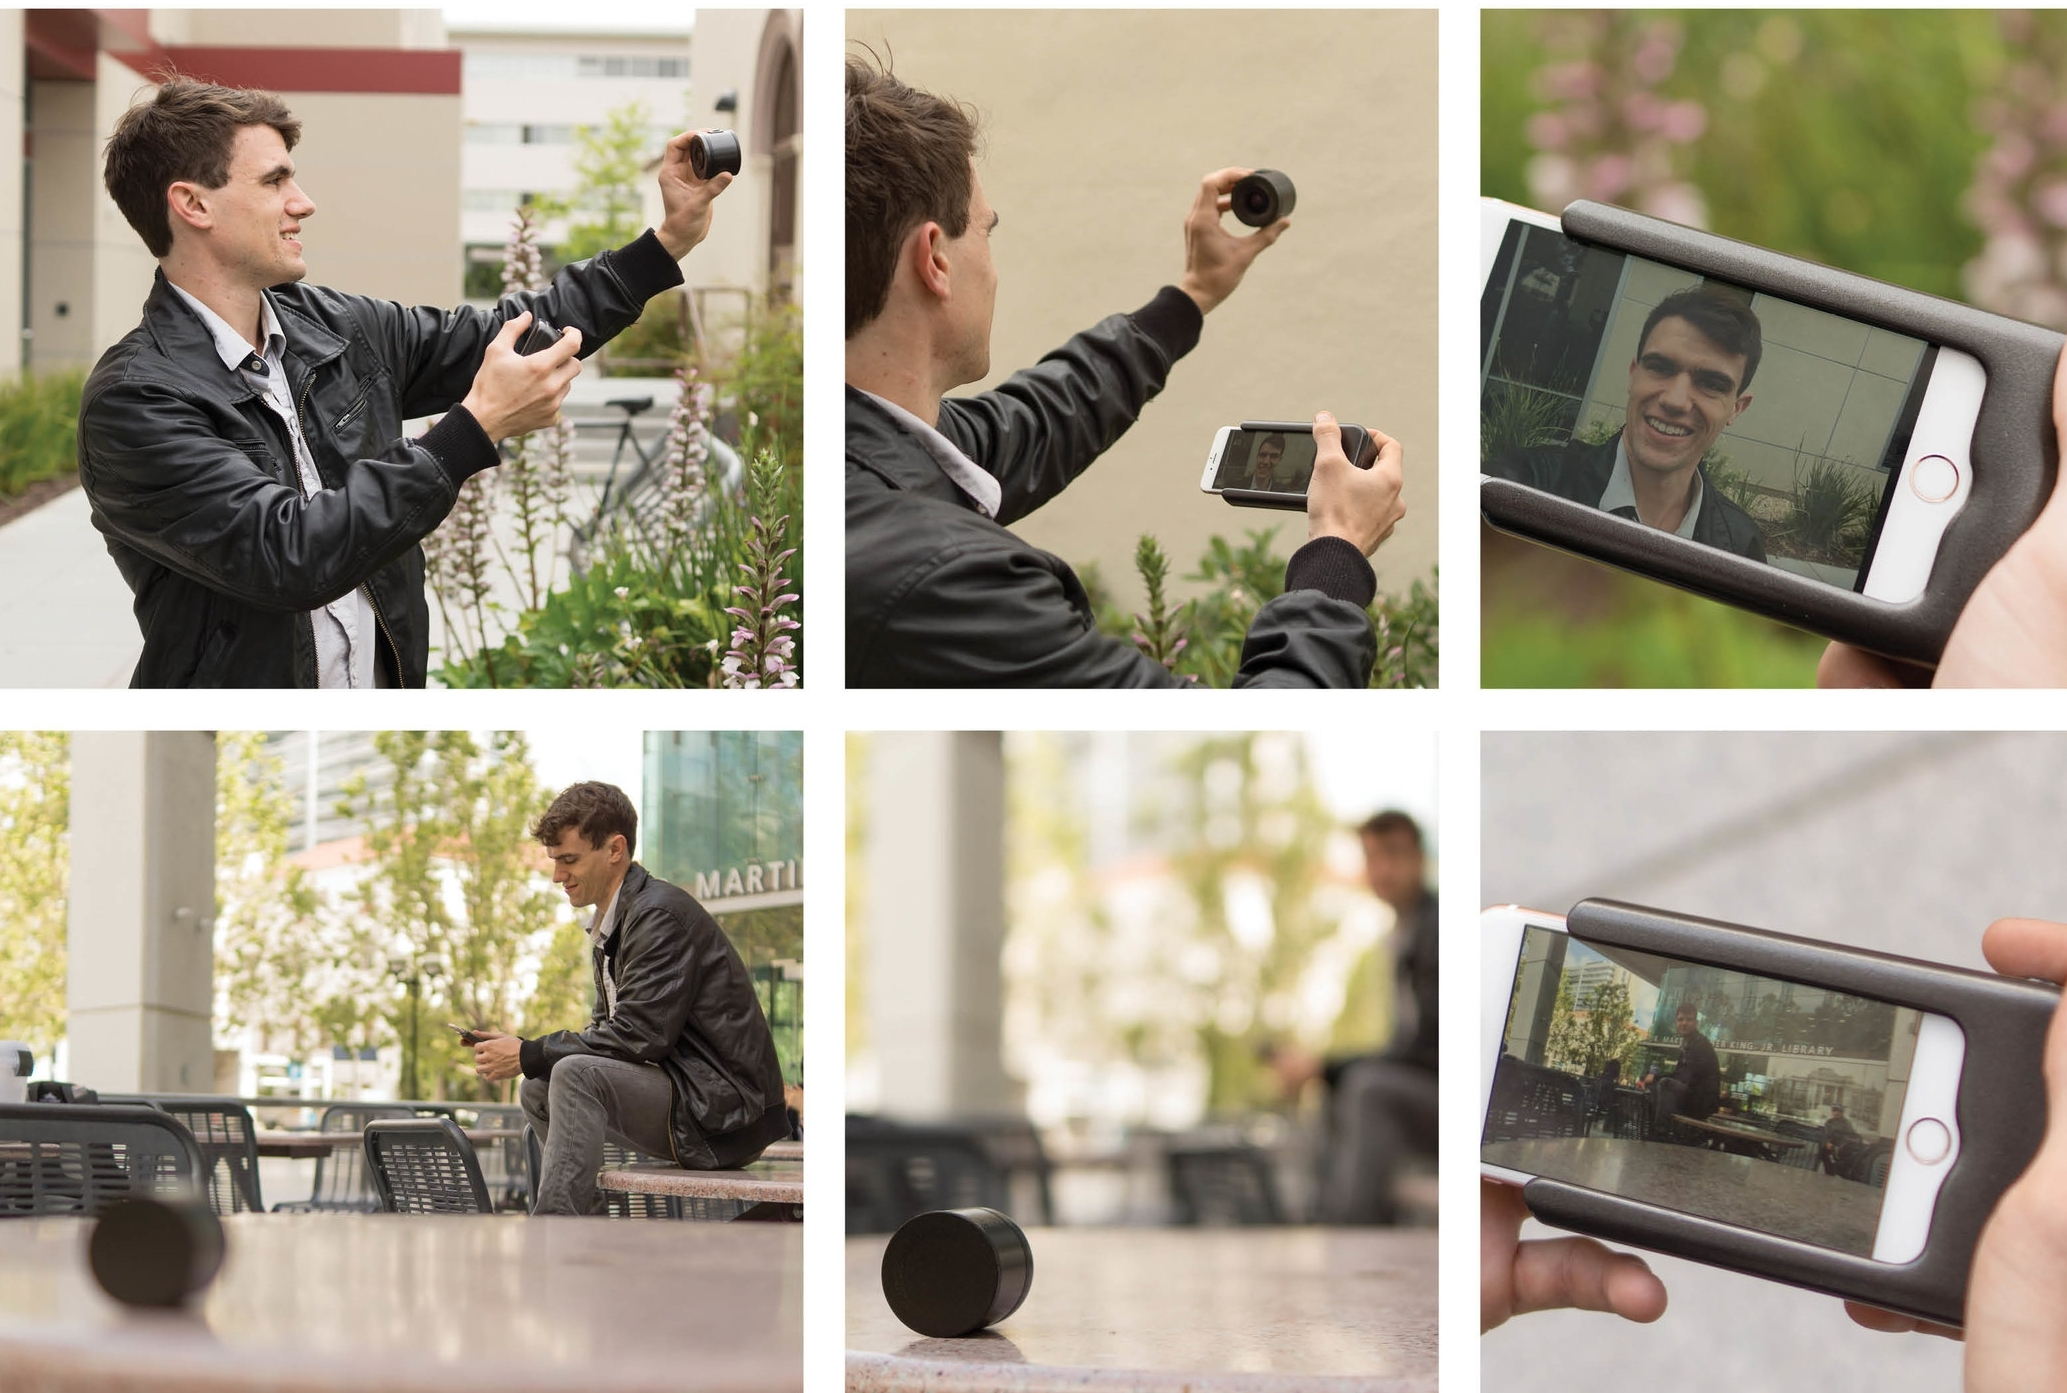 Due to the wireless feature of the lens, the user can use it as a selfie lens where they can hold the lens and take the picture on the other hand. Another method is placing the lens on a surface, and they can take a wide-shot with the background.